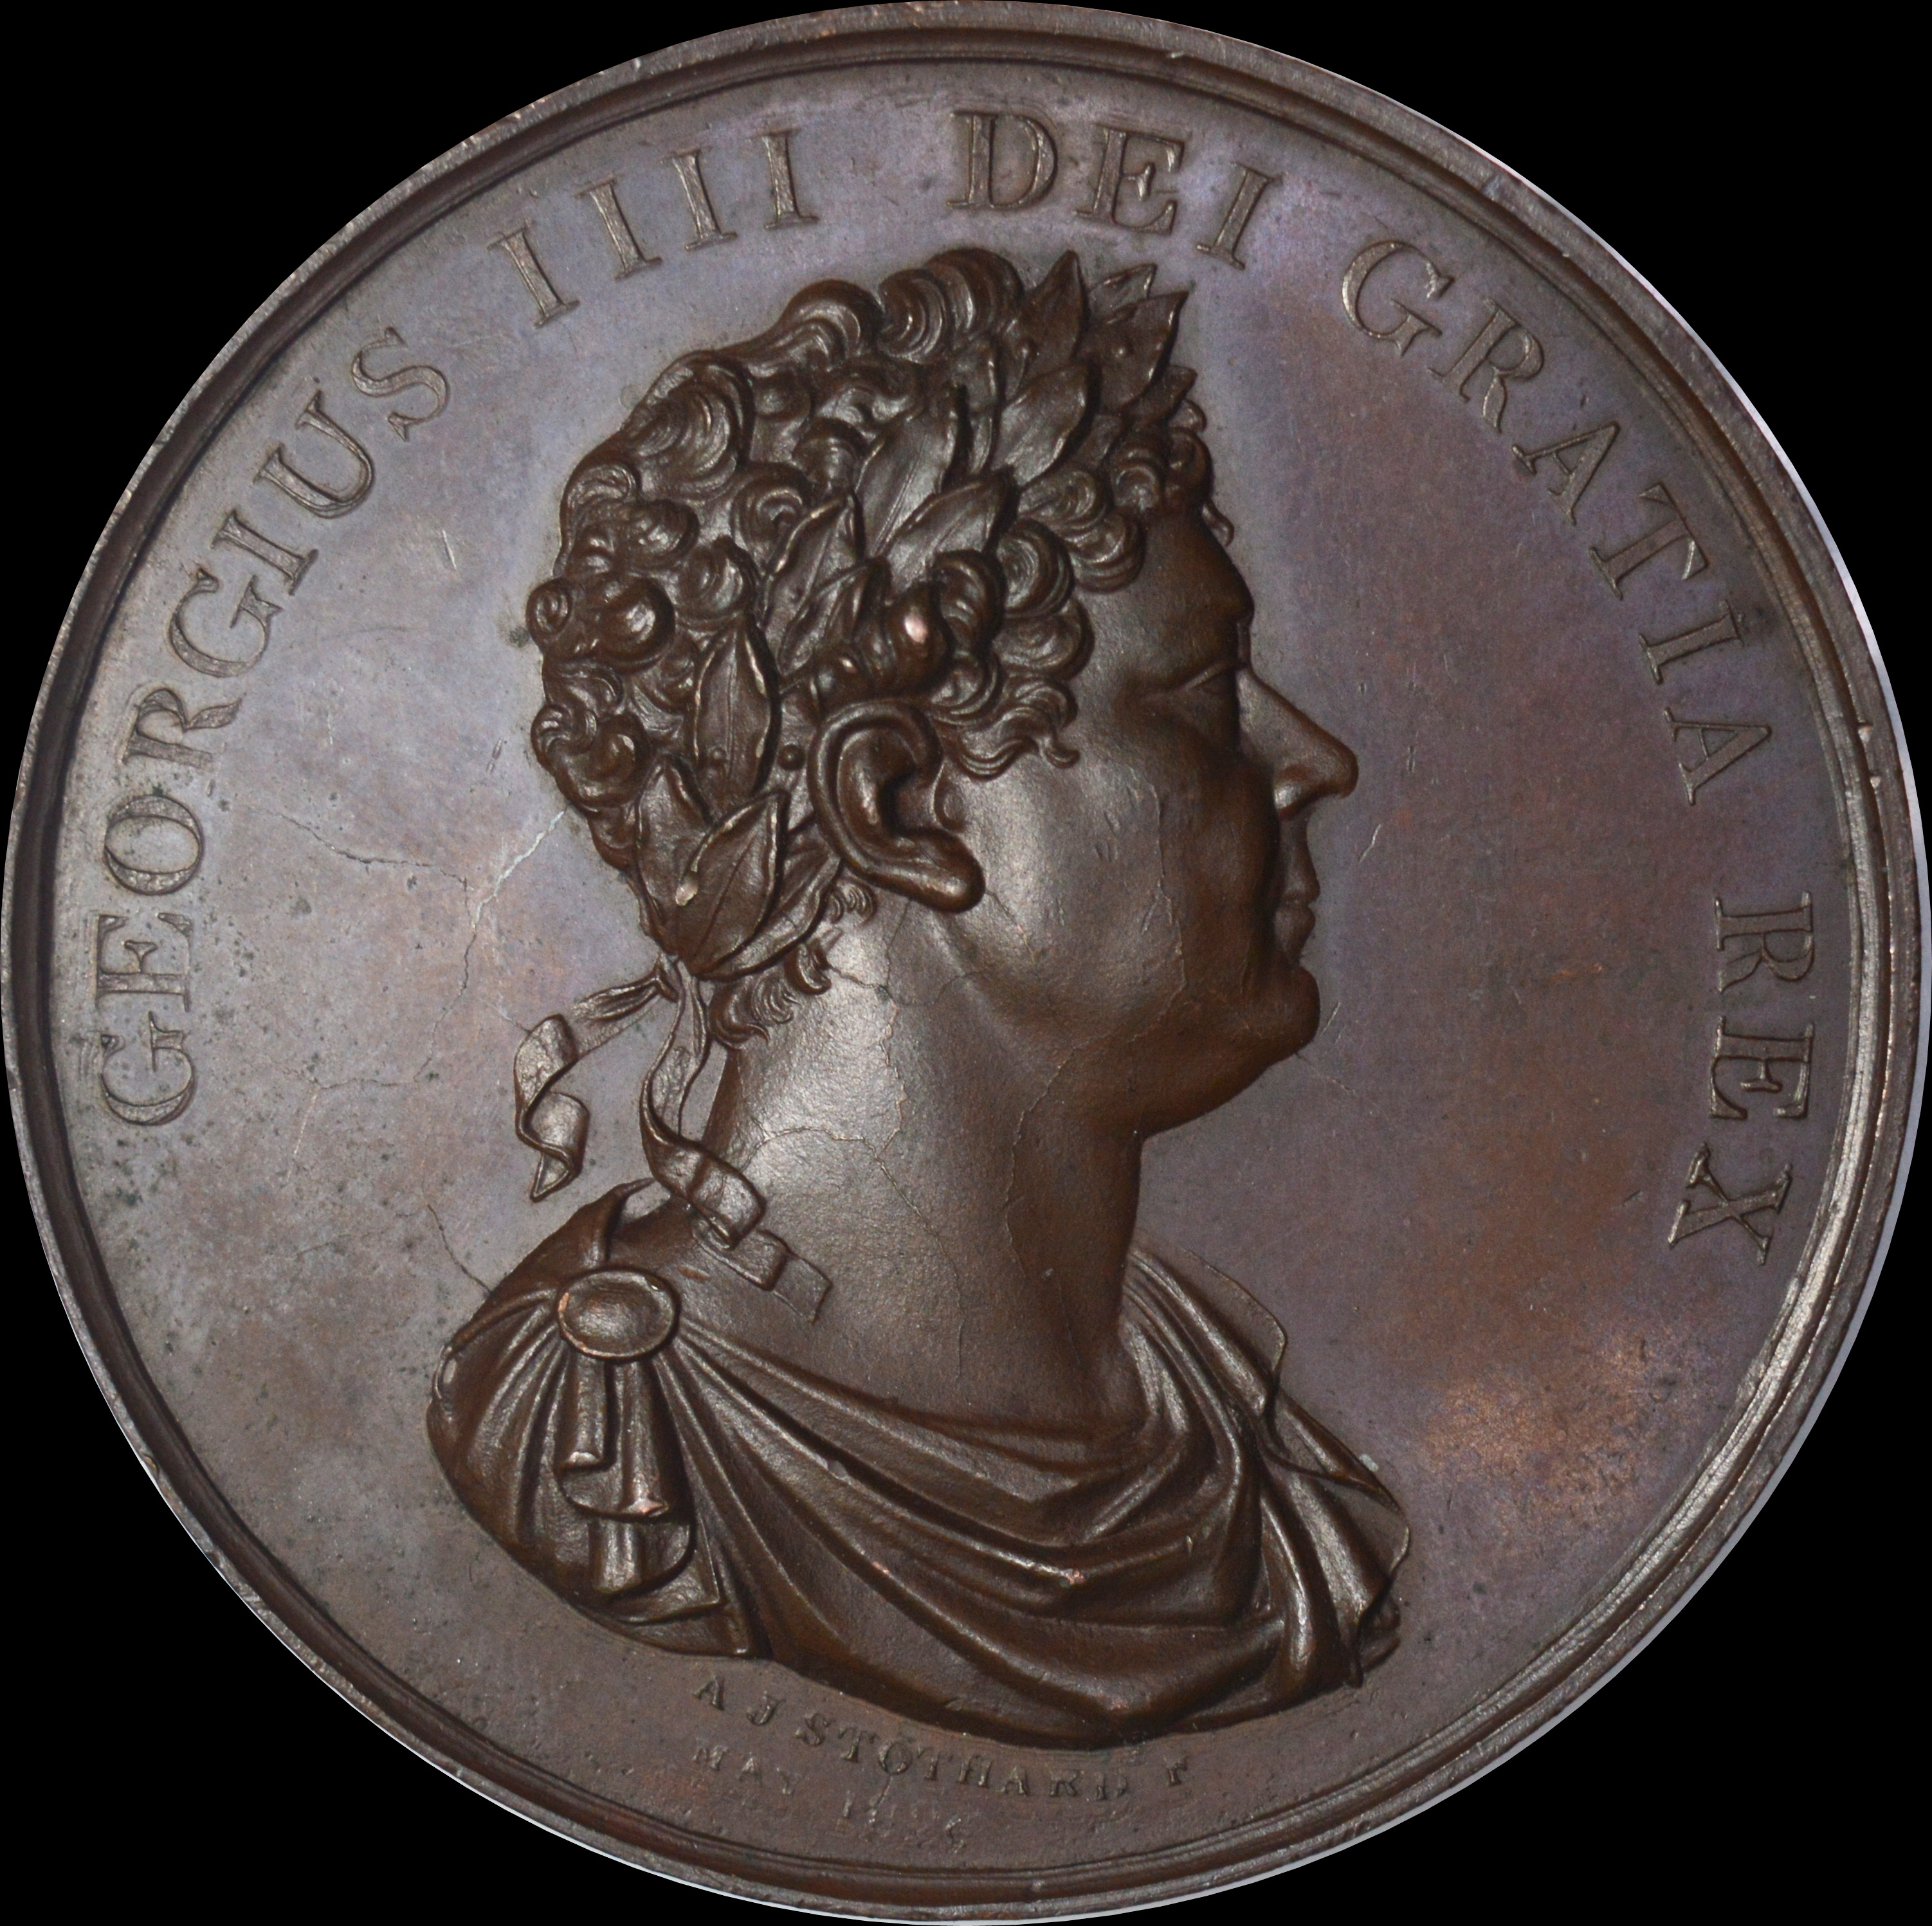 England - Death of George IV 1830 Bronze Memorial medal By Stothard